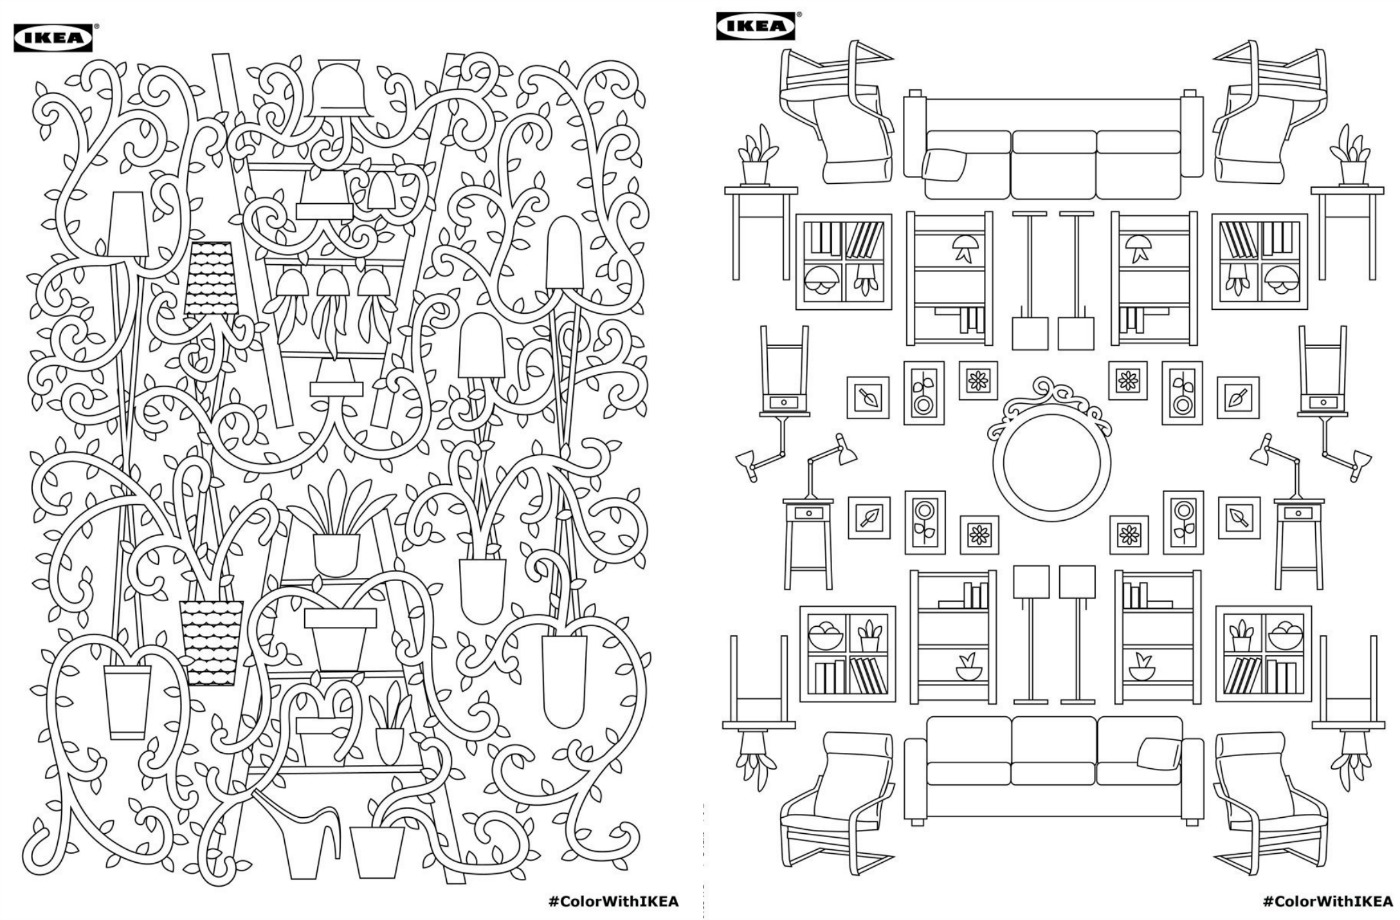 download ikeas adult coloring book for free - Free Download Colouring Book